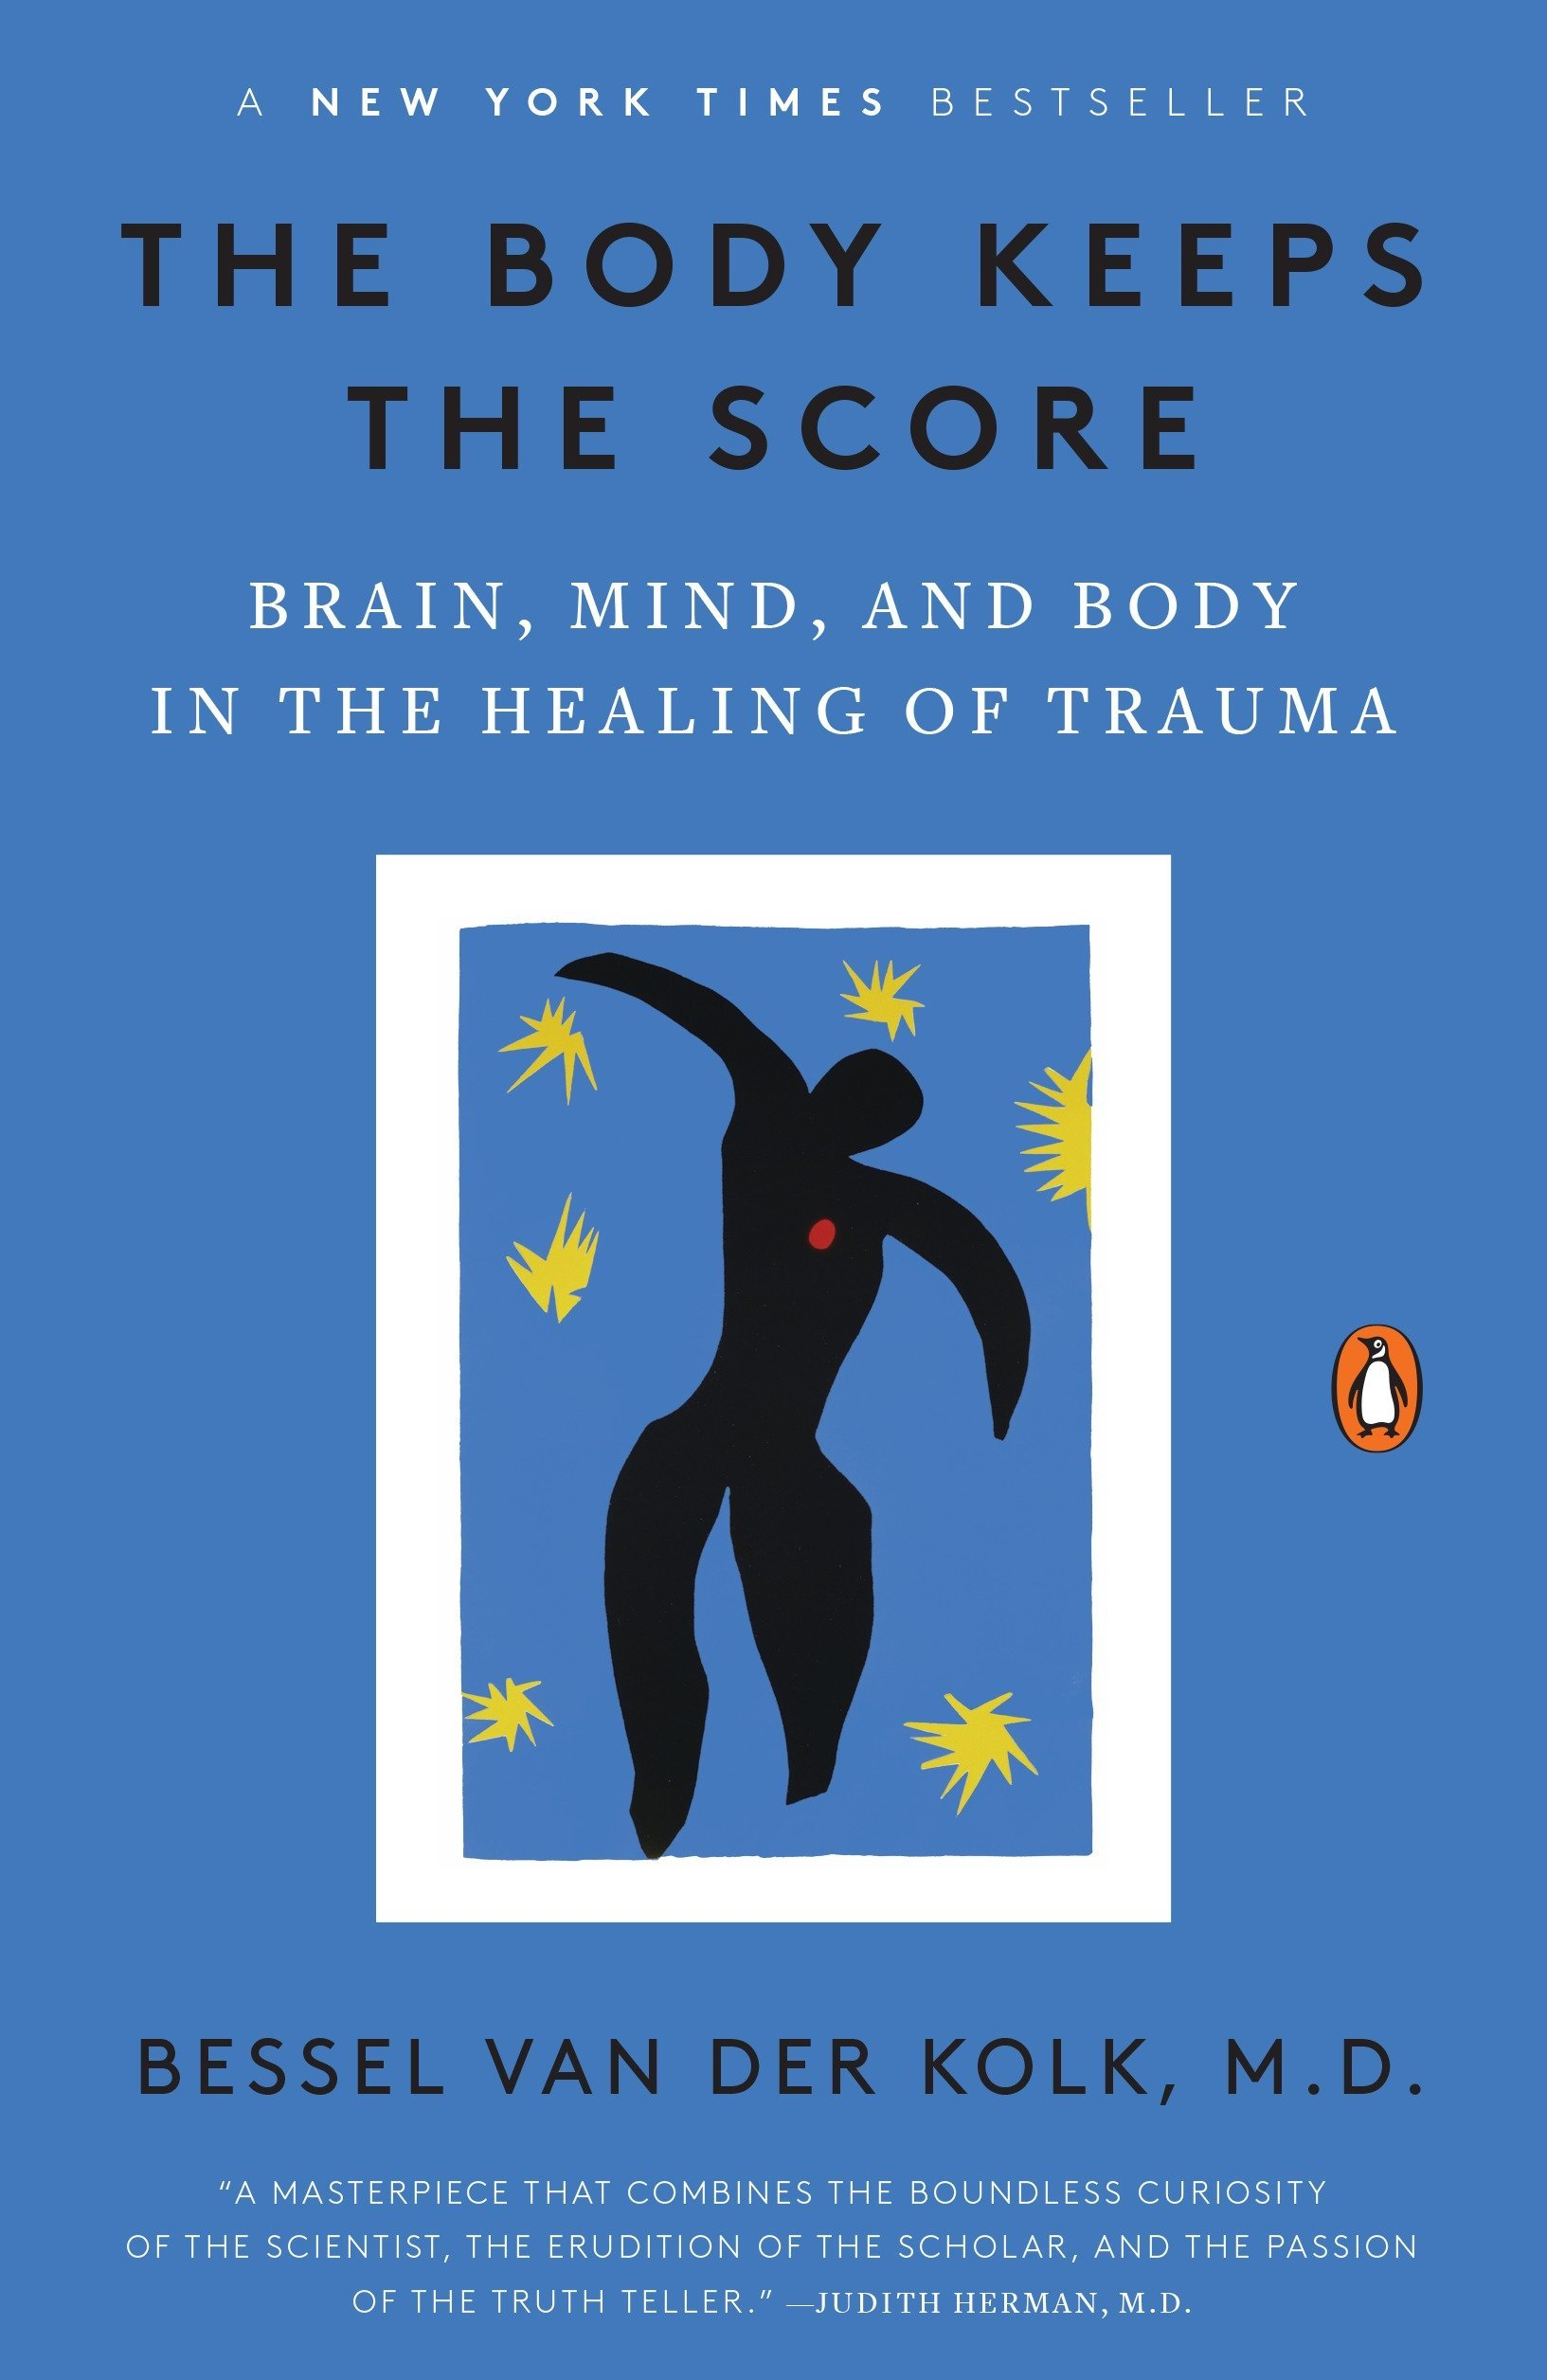 71oE1a7BYYL - The Body Keeps the Score: Brain, Mind, and Body in the Healing of Trauma